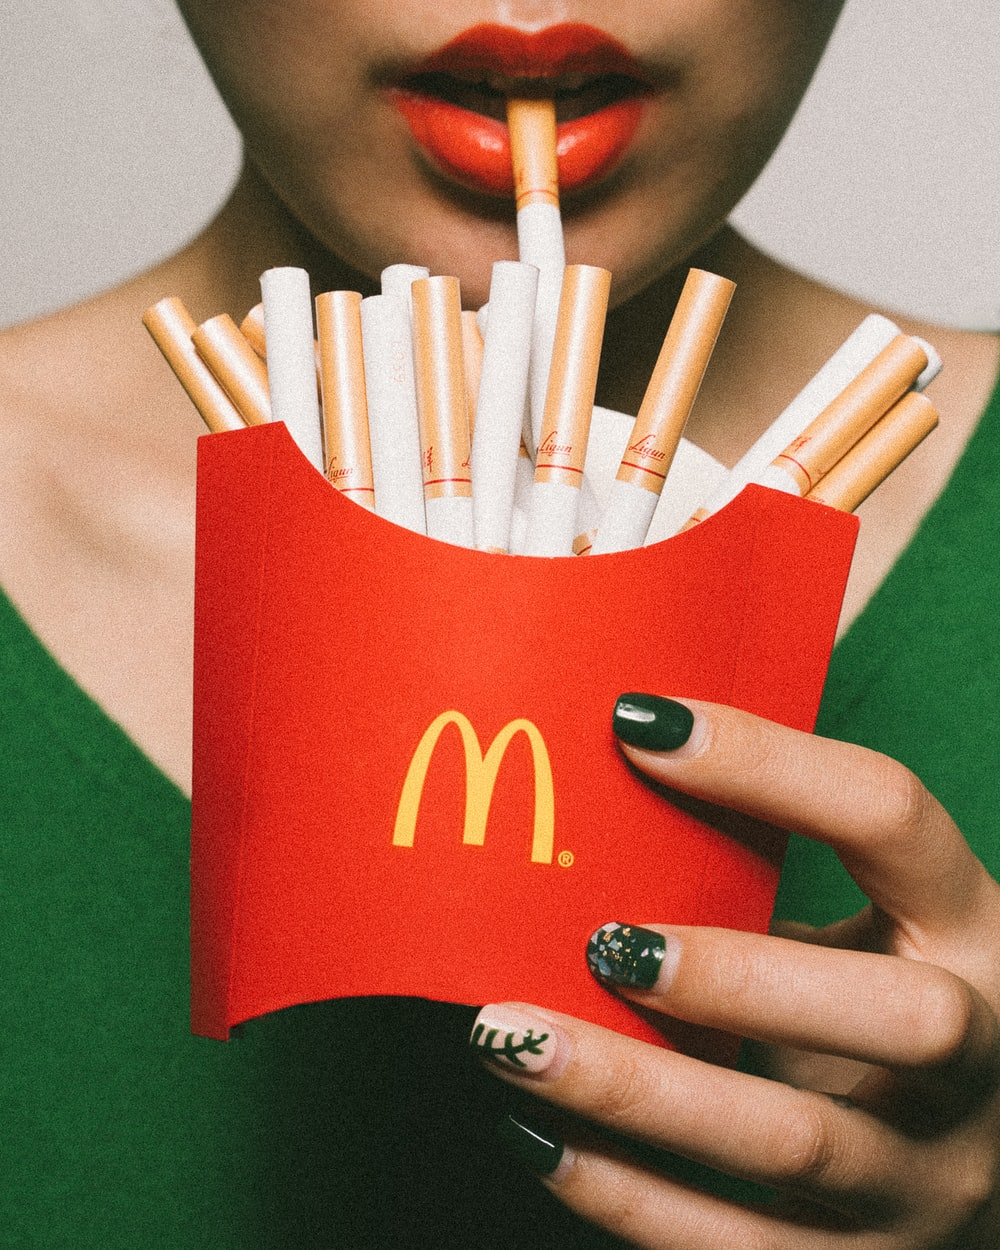 woman holding McDonald's fries pack filled with cigarettes